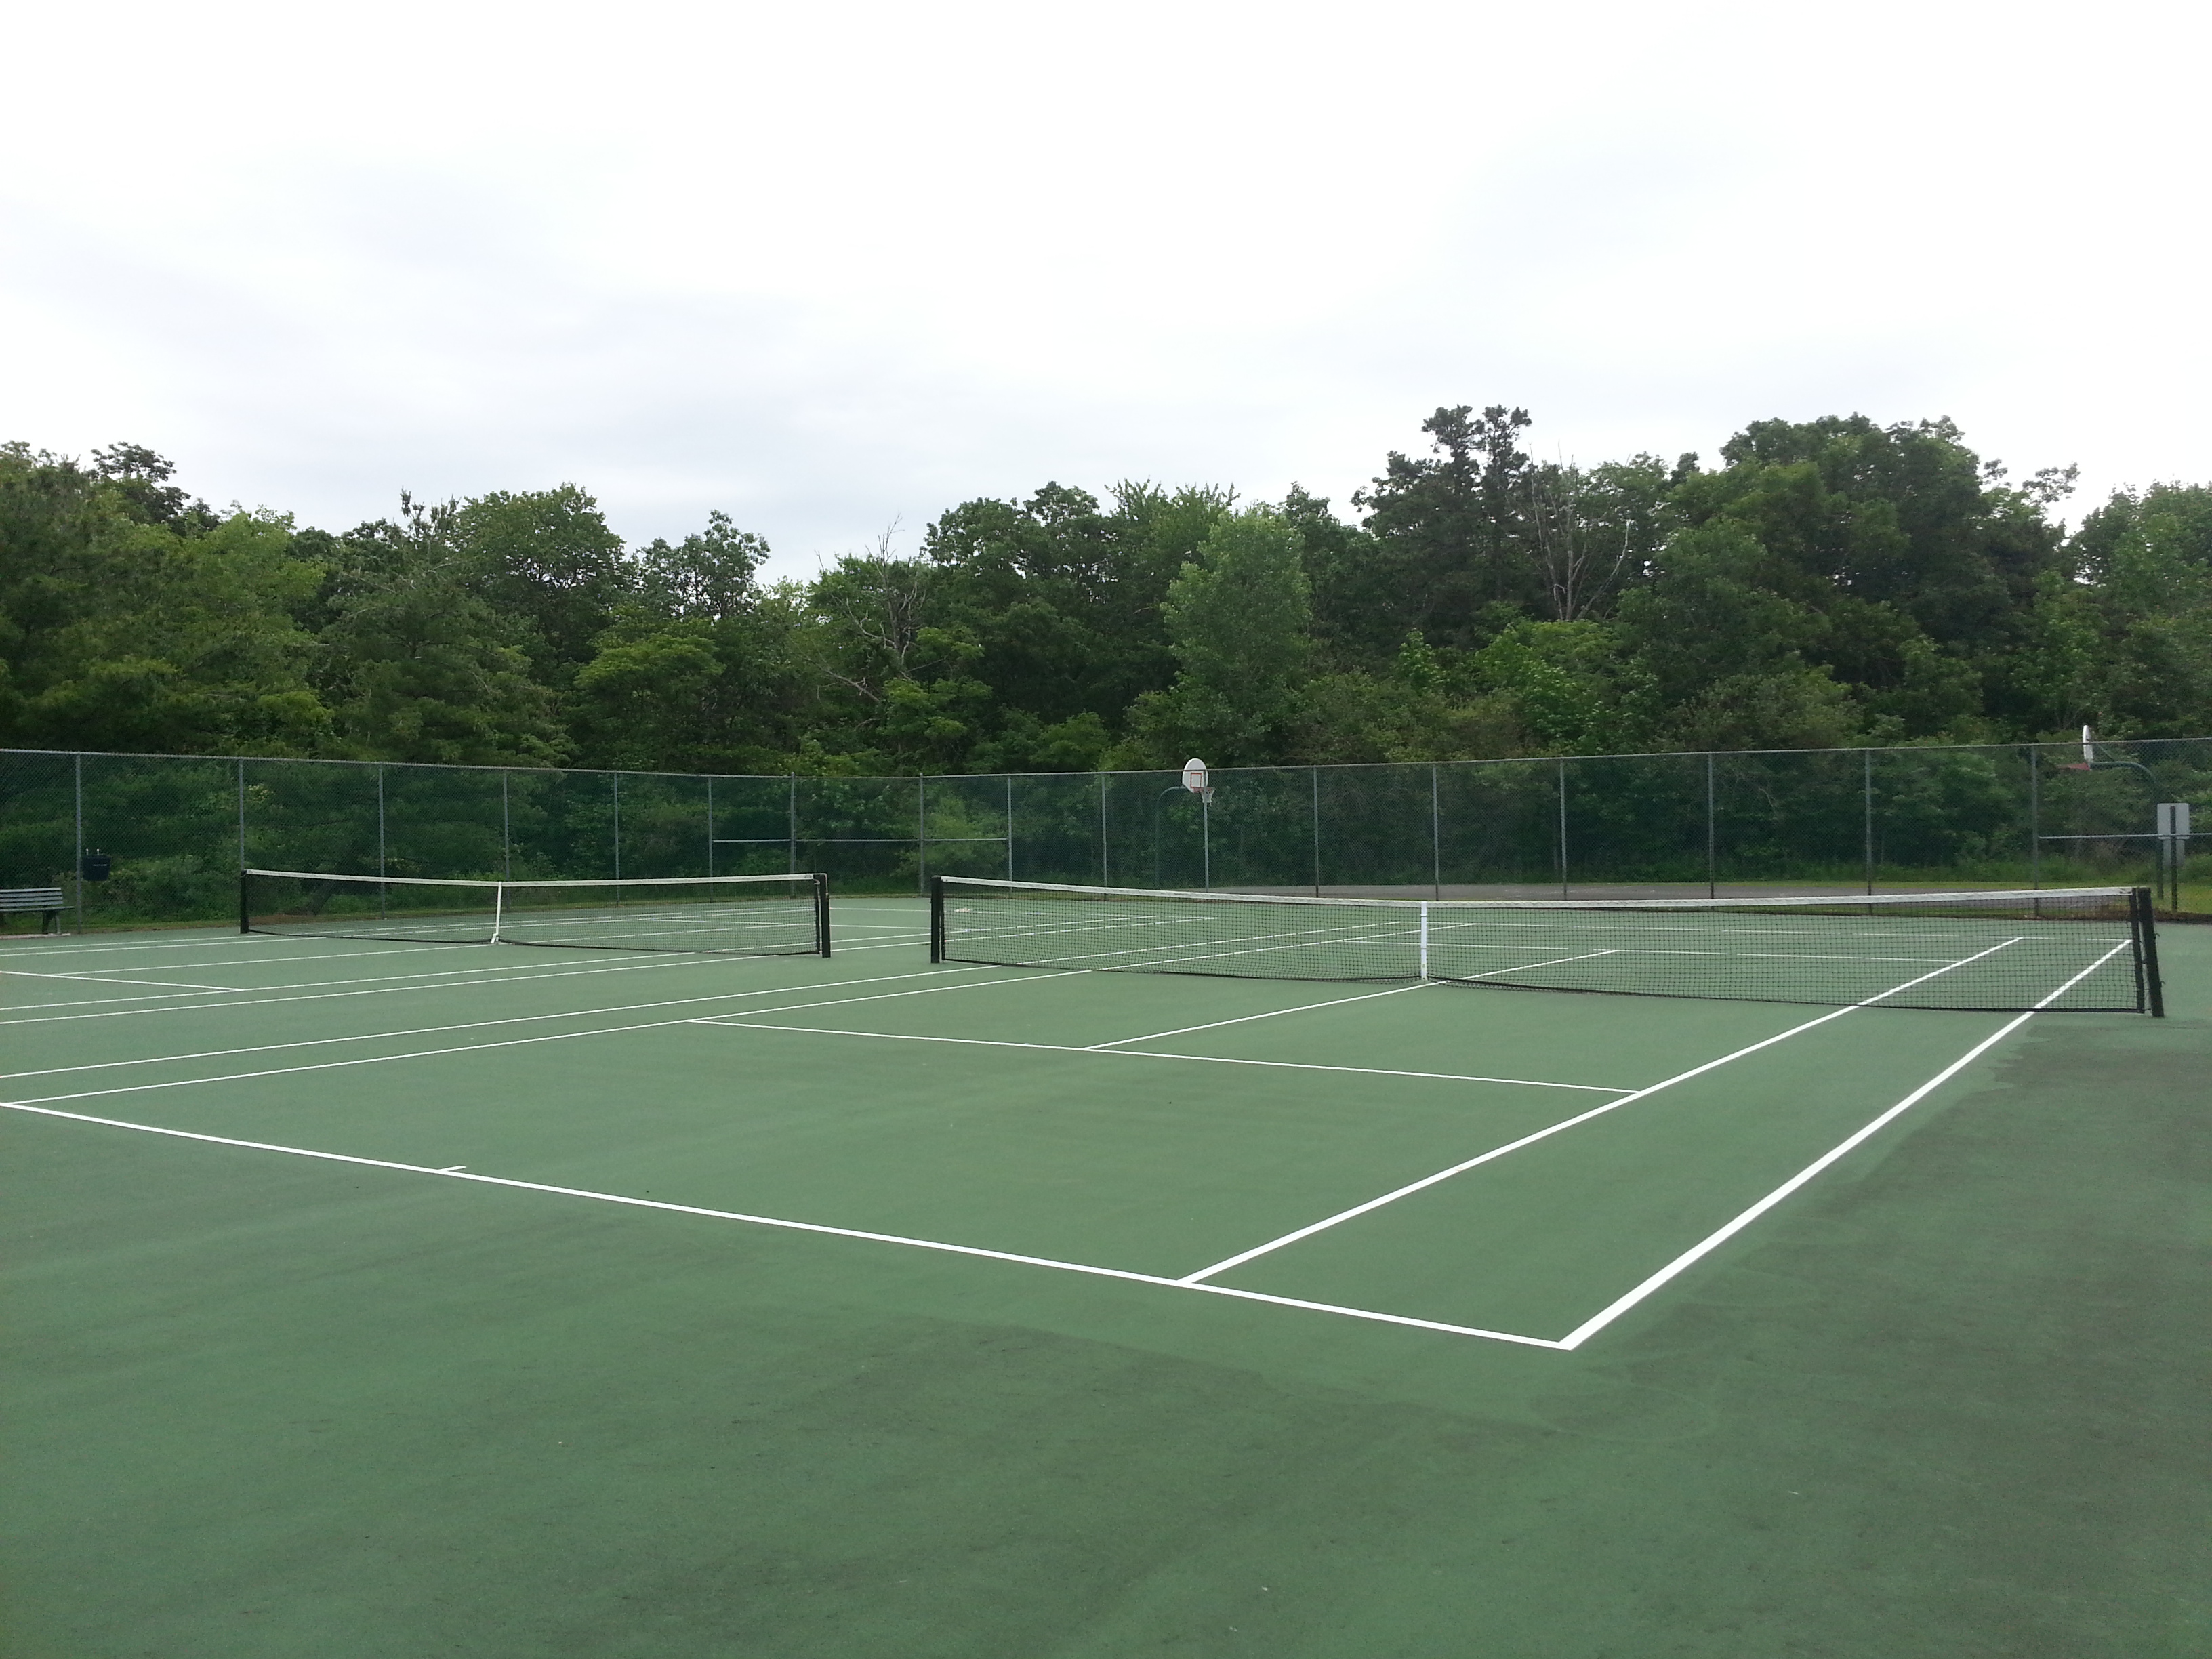 Hidden Meadows has two tennis courts located next to the pool area.